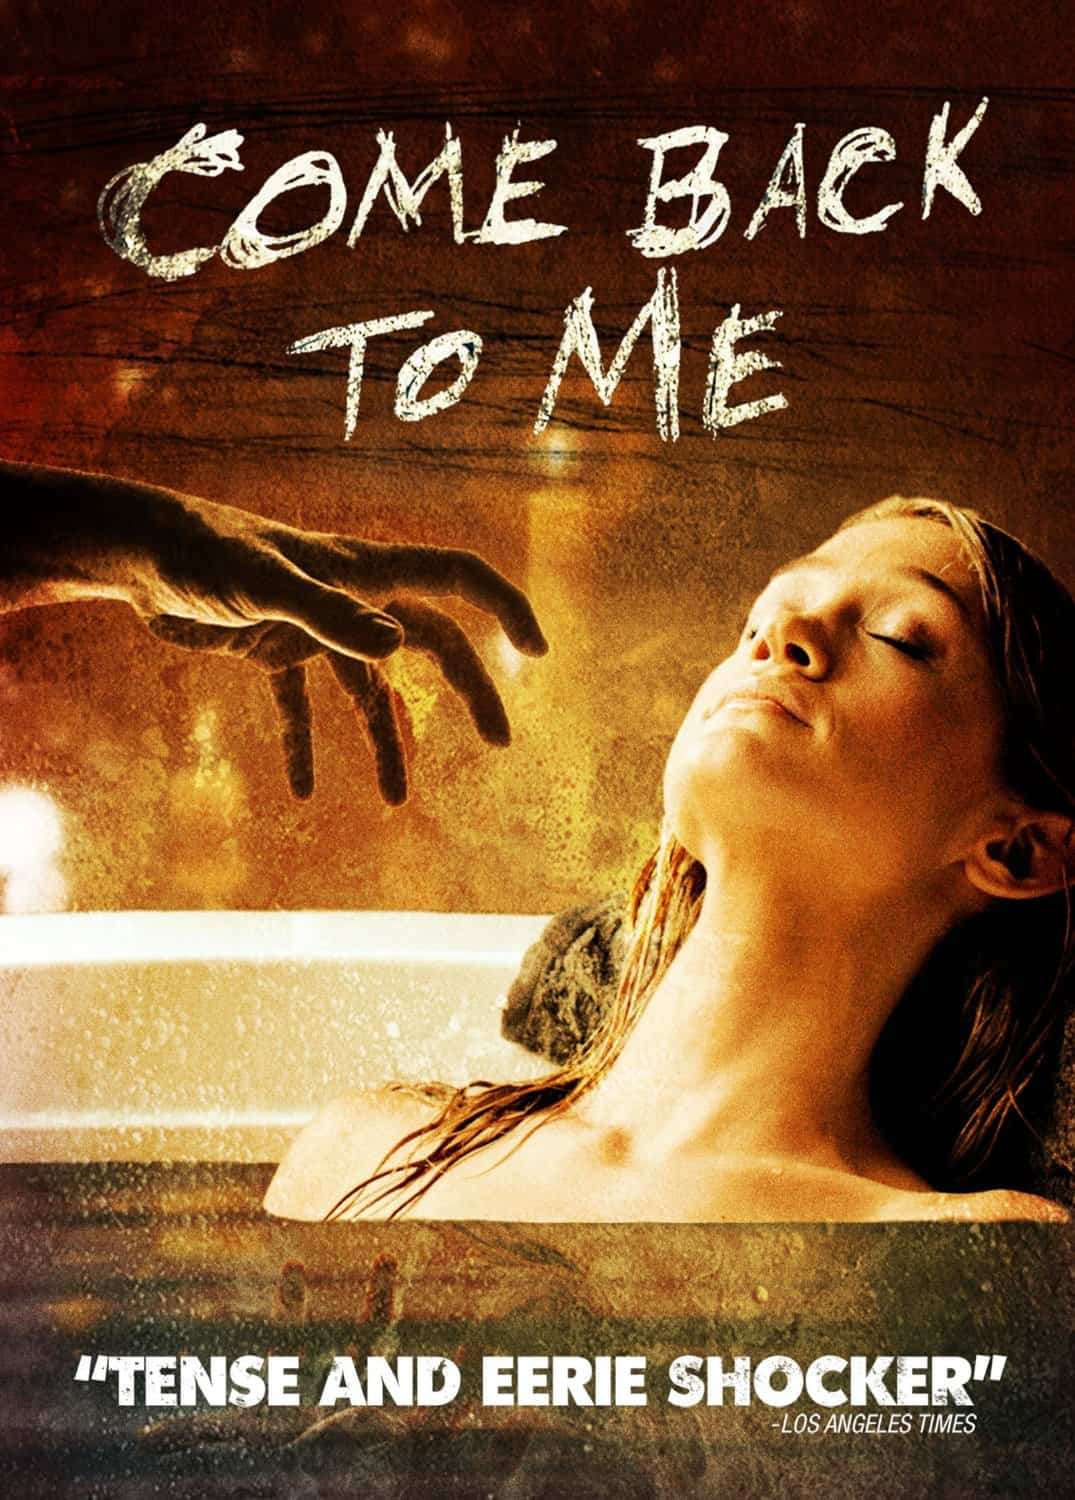 comoebacktome dvd - Come Back to Me Comes Back on DVD March 10th